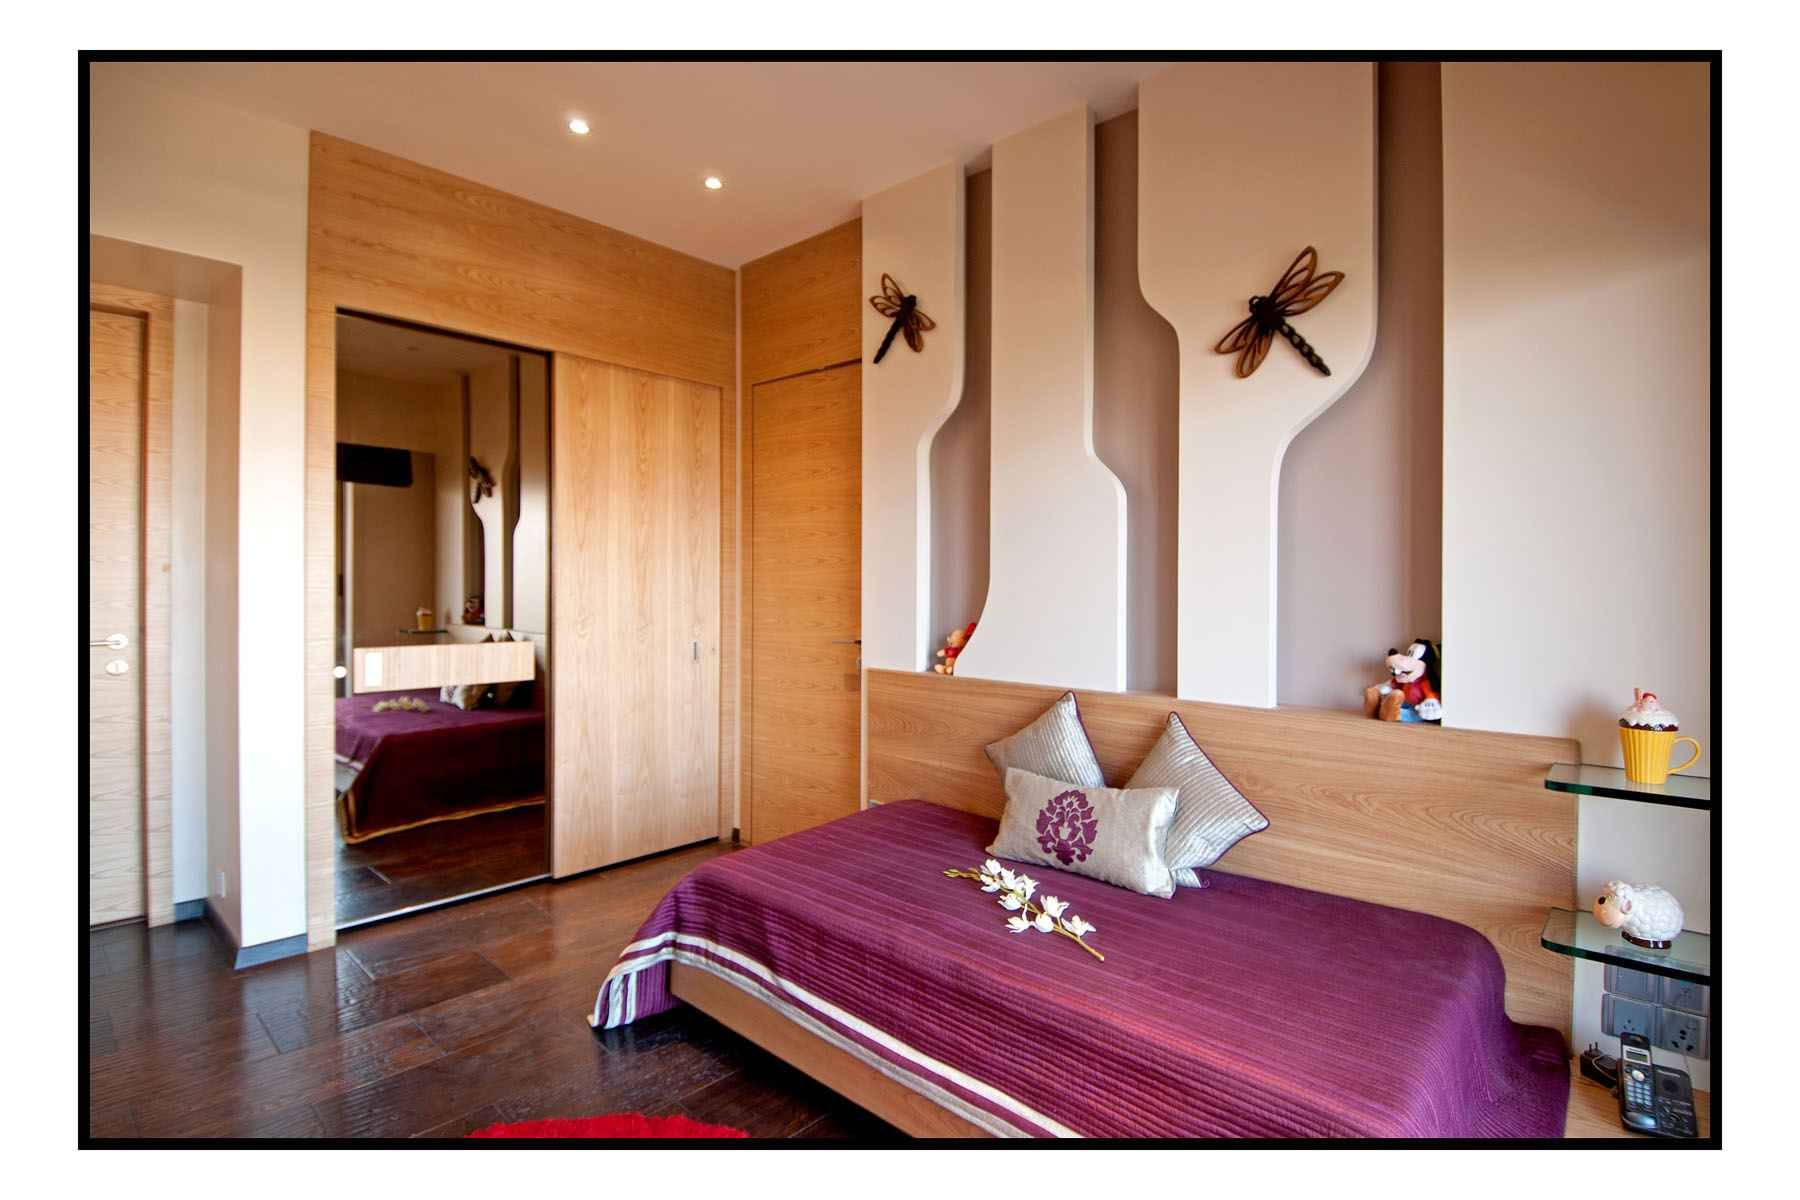 Luxury Bedroom Design By Sameer Panchal Architect In